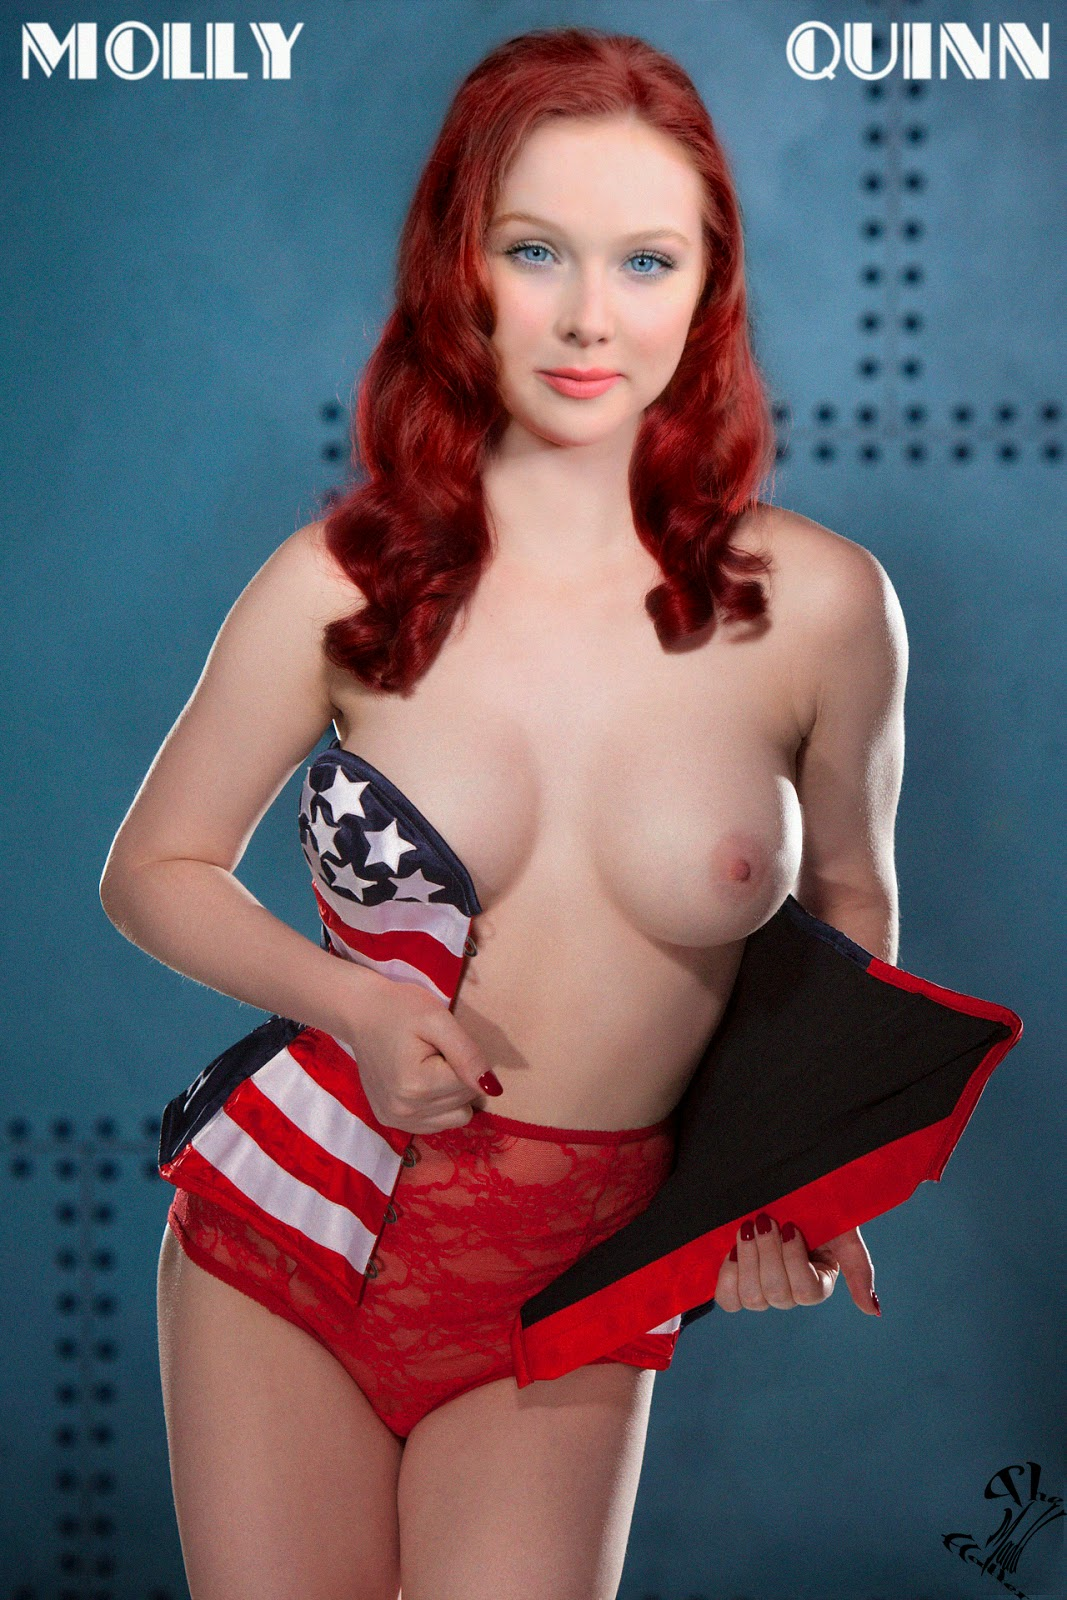 Seems excellent Molly quinn nude com with you